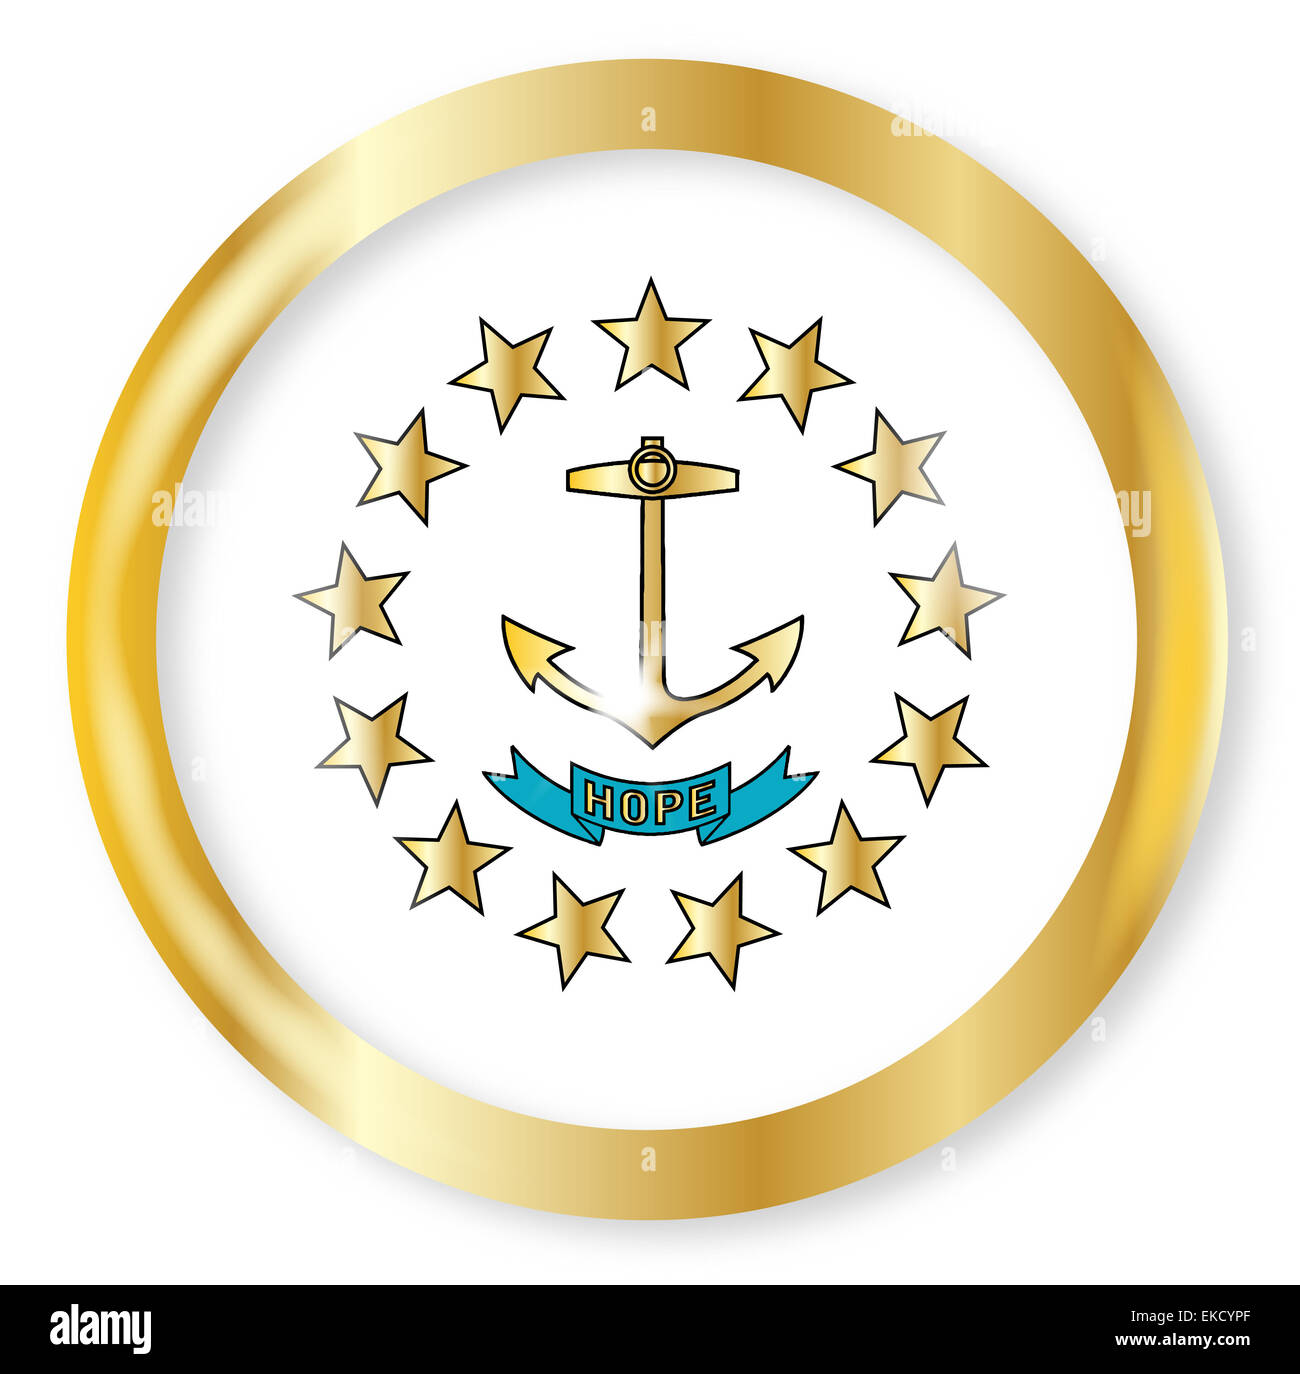 Rhode island state flag button with a gold metal circular border rhode island state flag button with a gold metal circular border over a white background biocorpaavc Choice Image